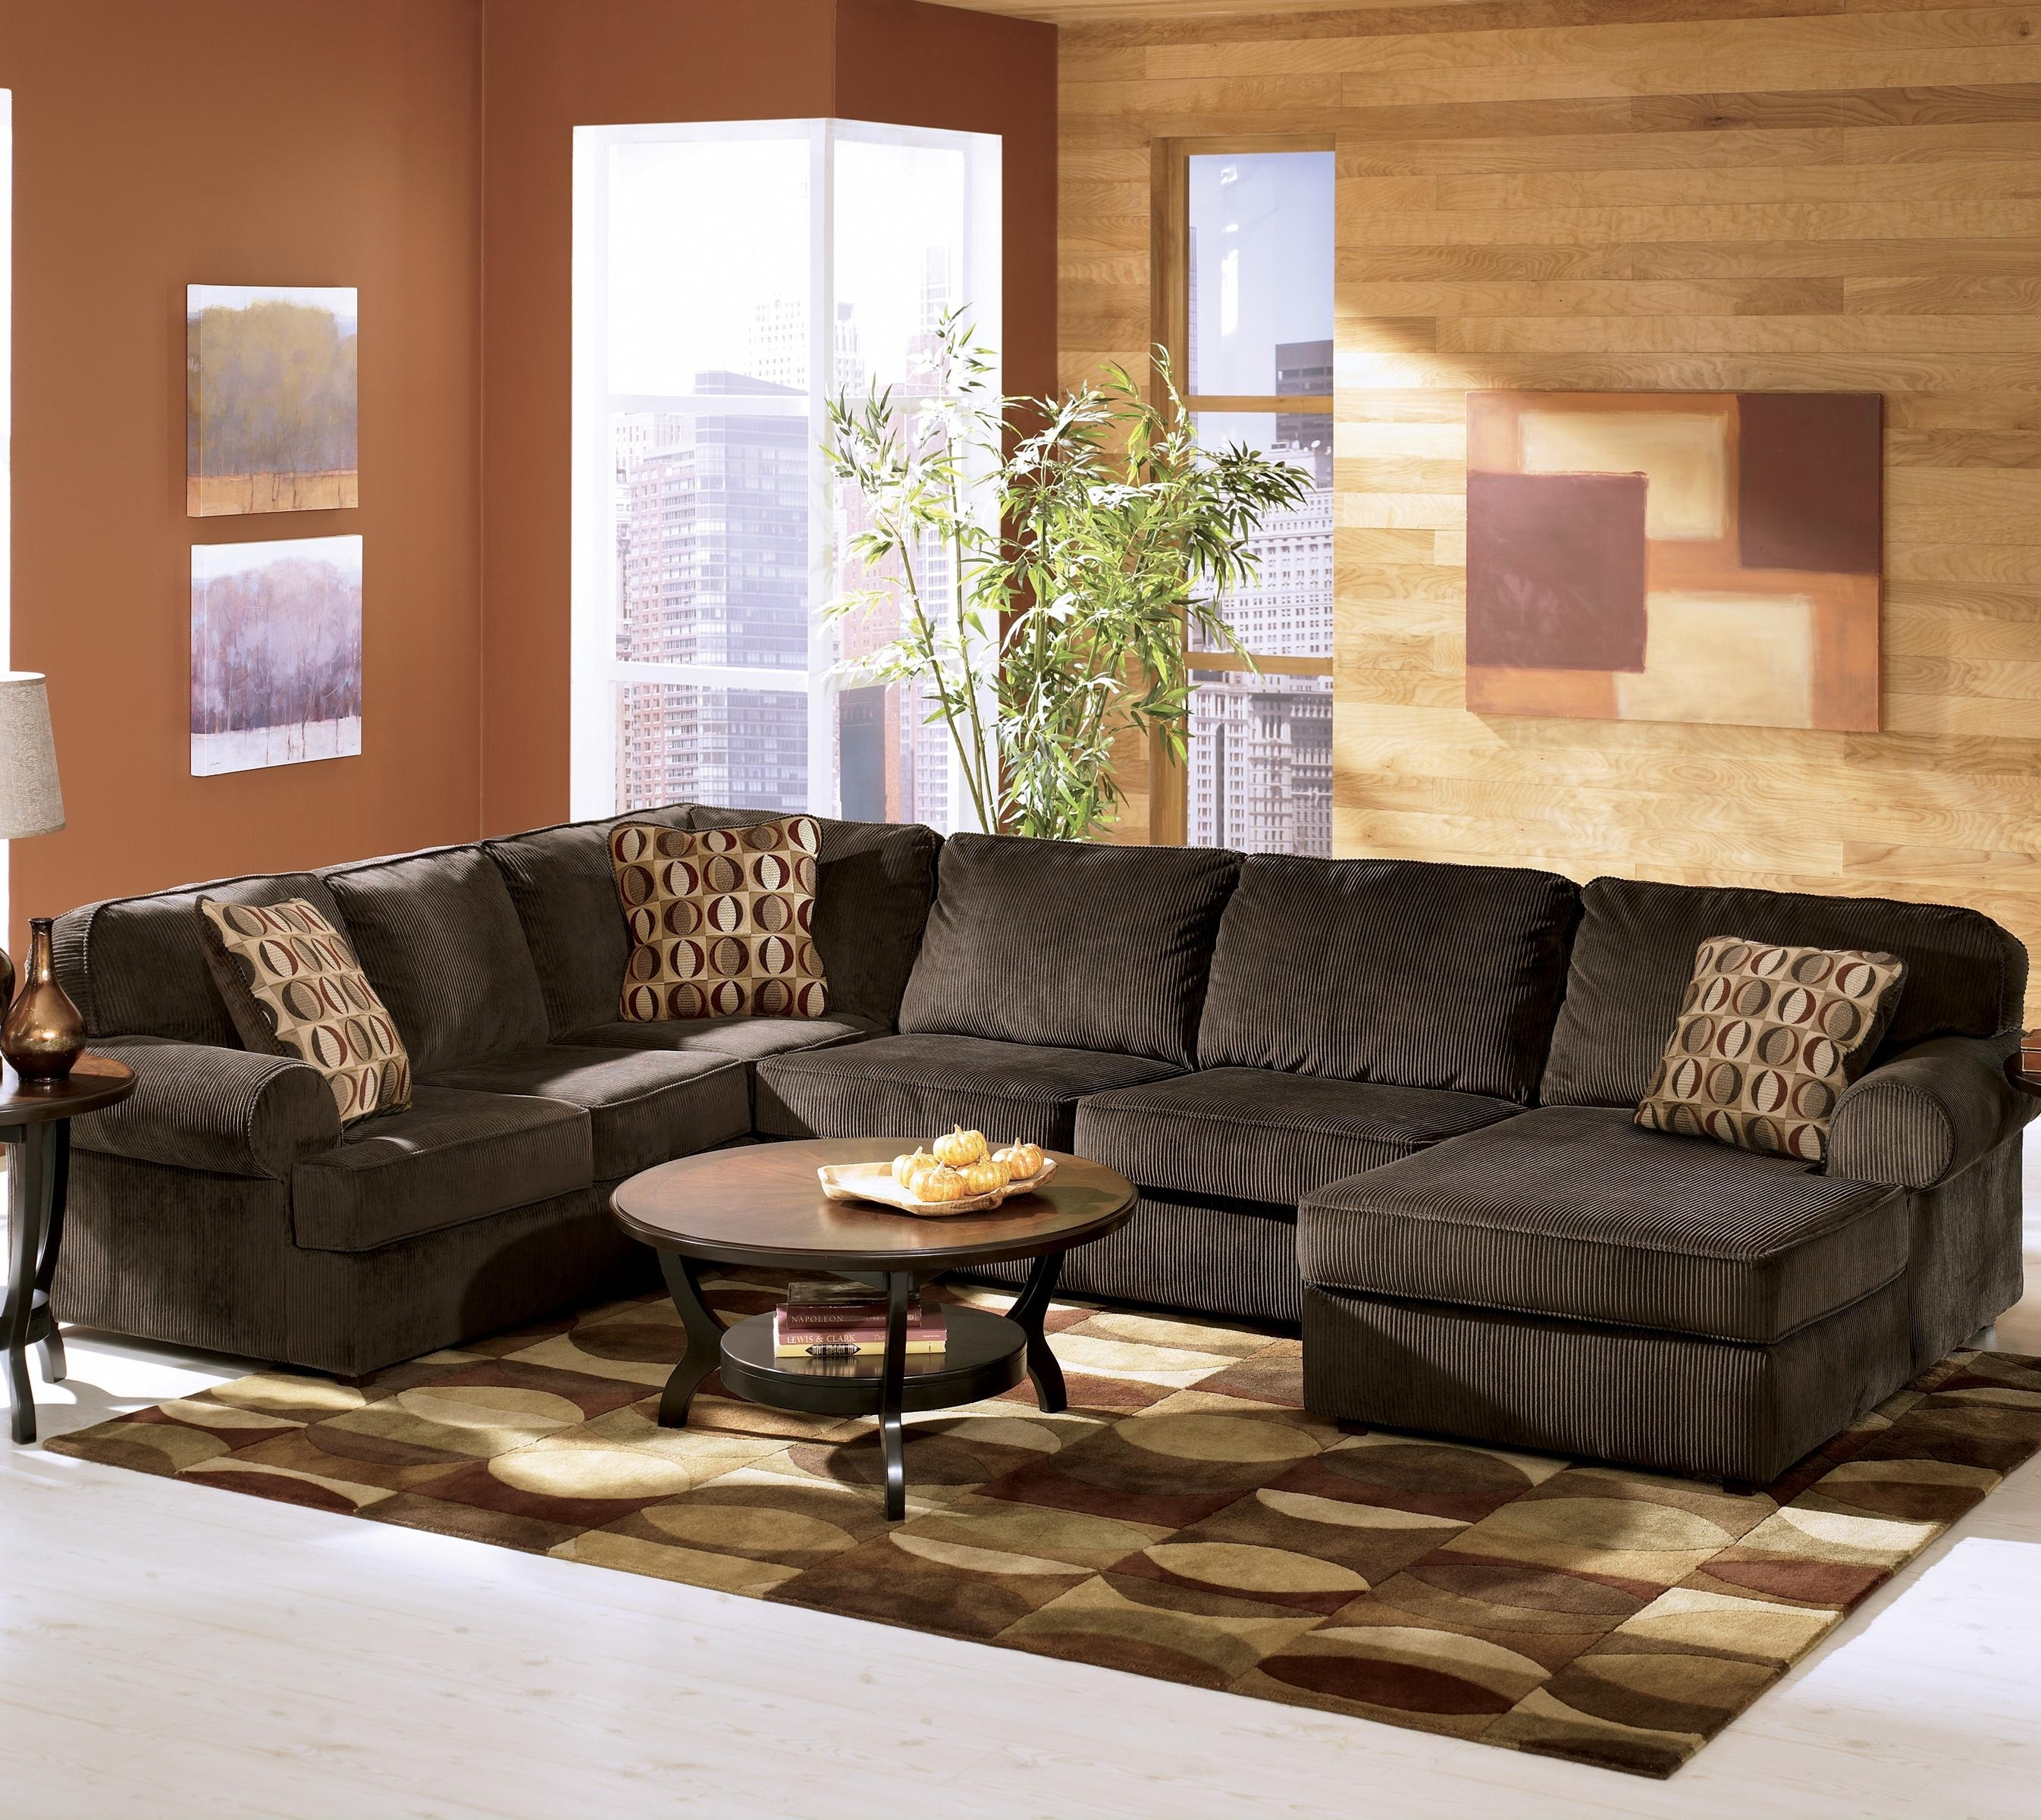 Ashley Furniture Vista - Chocolate 3-Piece Sectional With Right inside Lucy Grey 2 Piece Sectionals With Laf Chaise (Image 6 of 30)